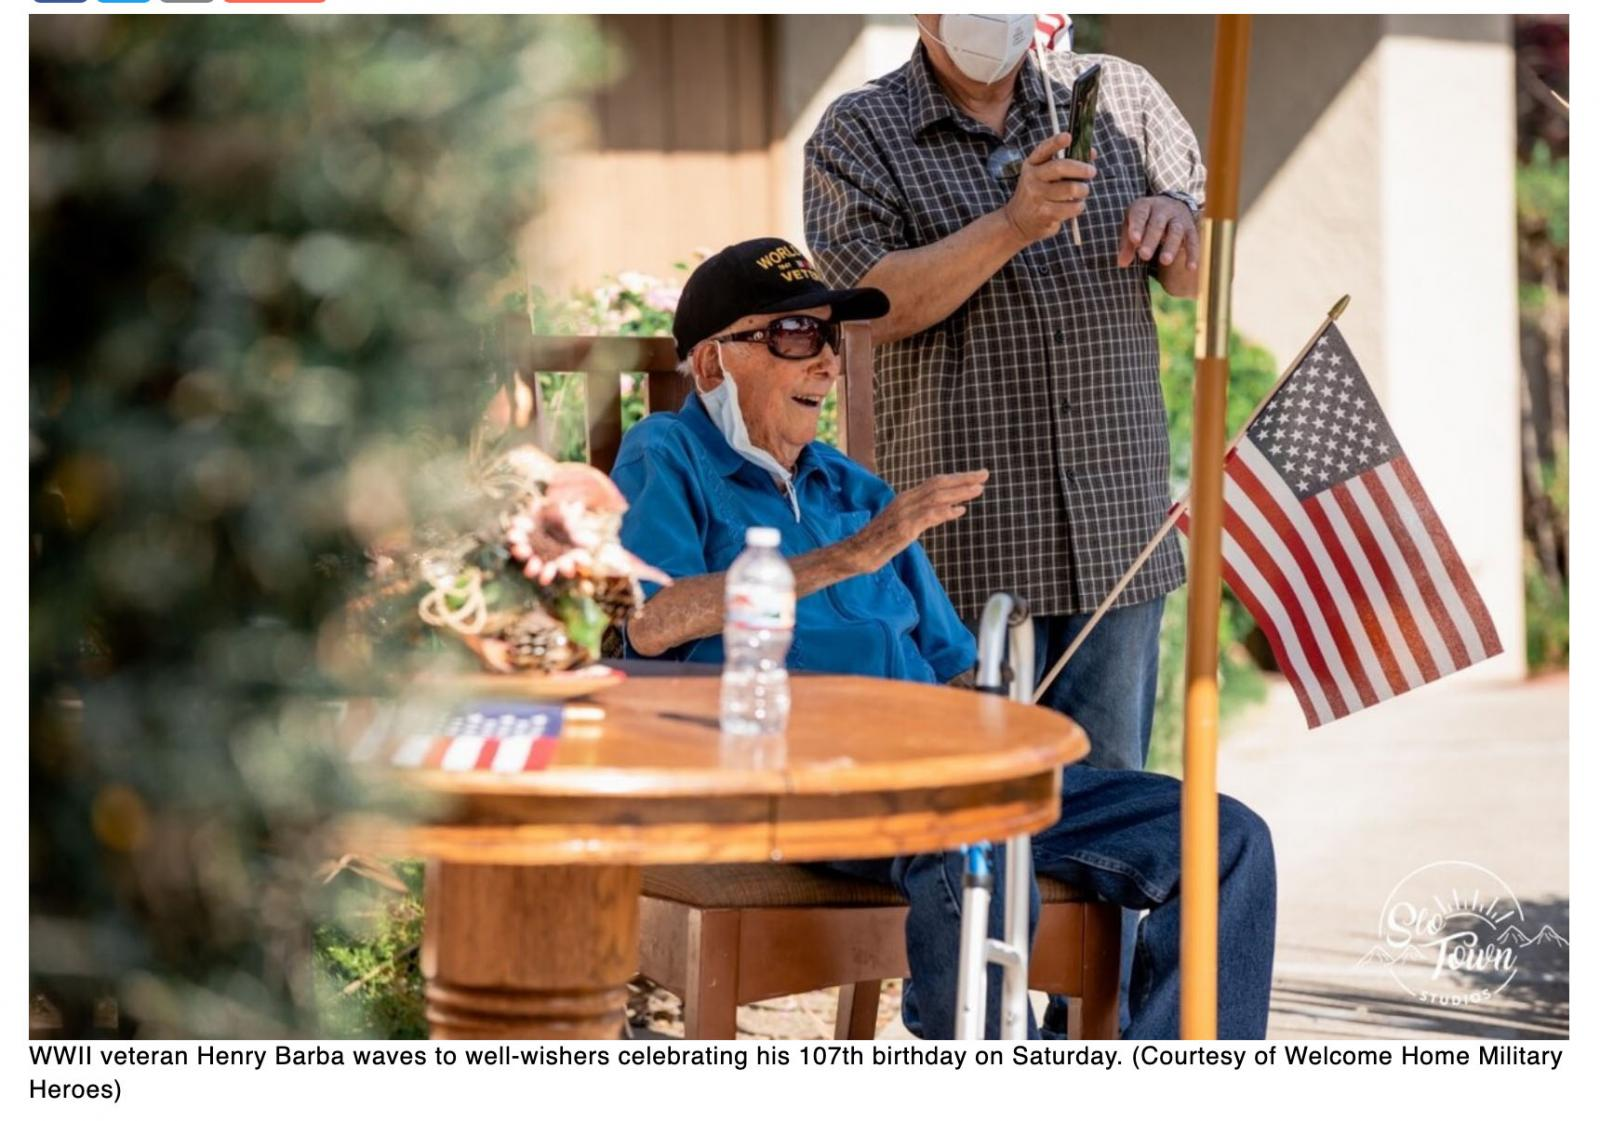 WWII vets 107th birthday brings parade of well wishers thanks to California nonprofit